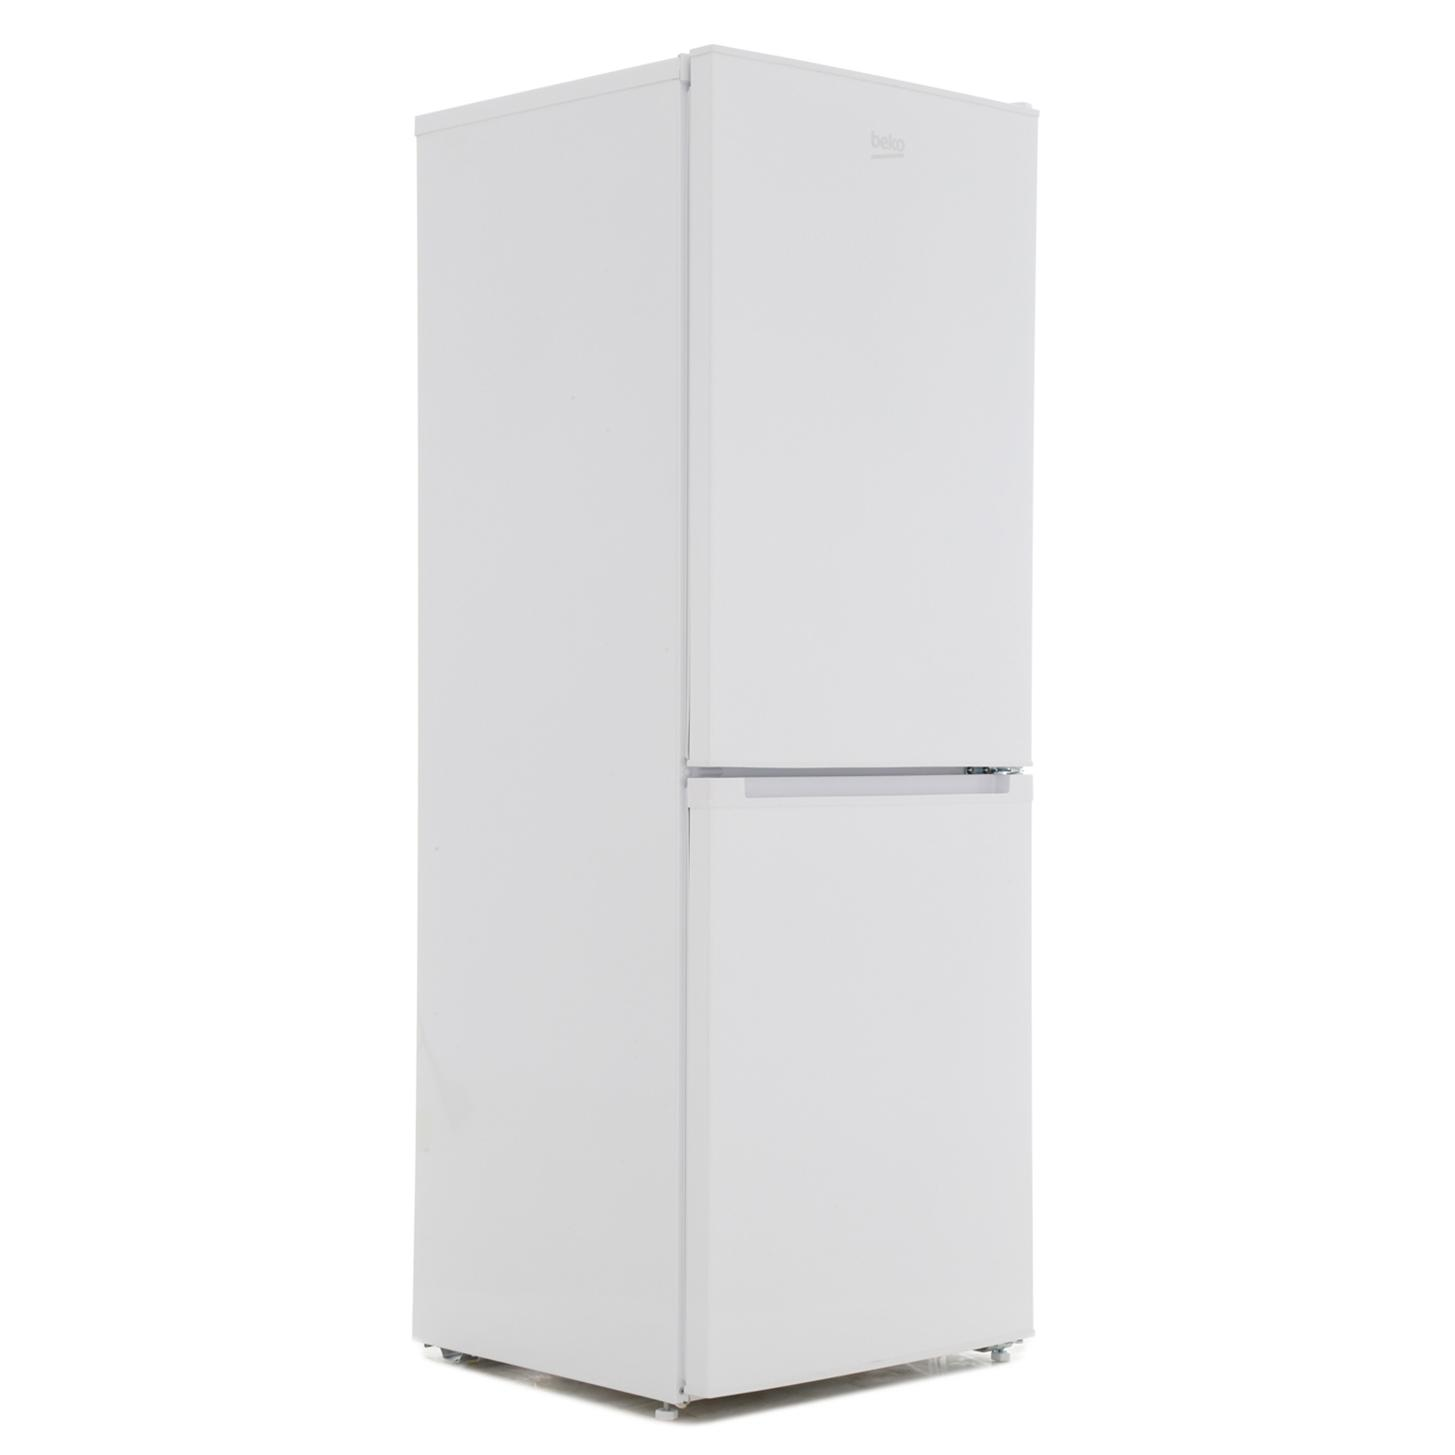 Fridge Freezer Beko Ccfm1552w Frost Free Fridge Freezer